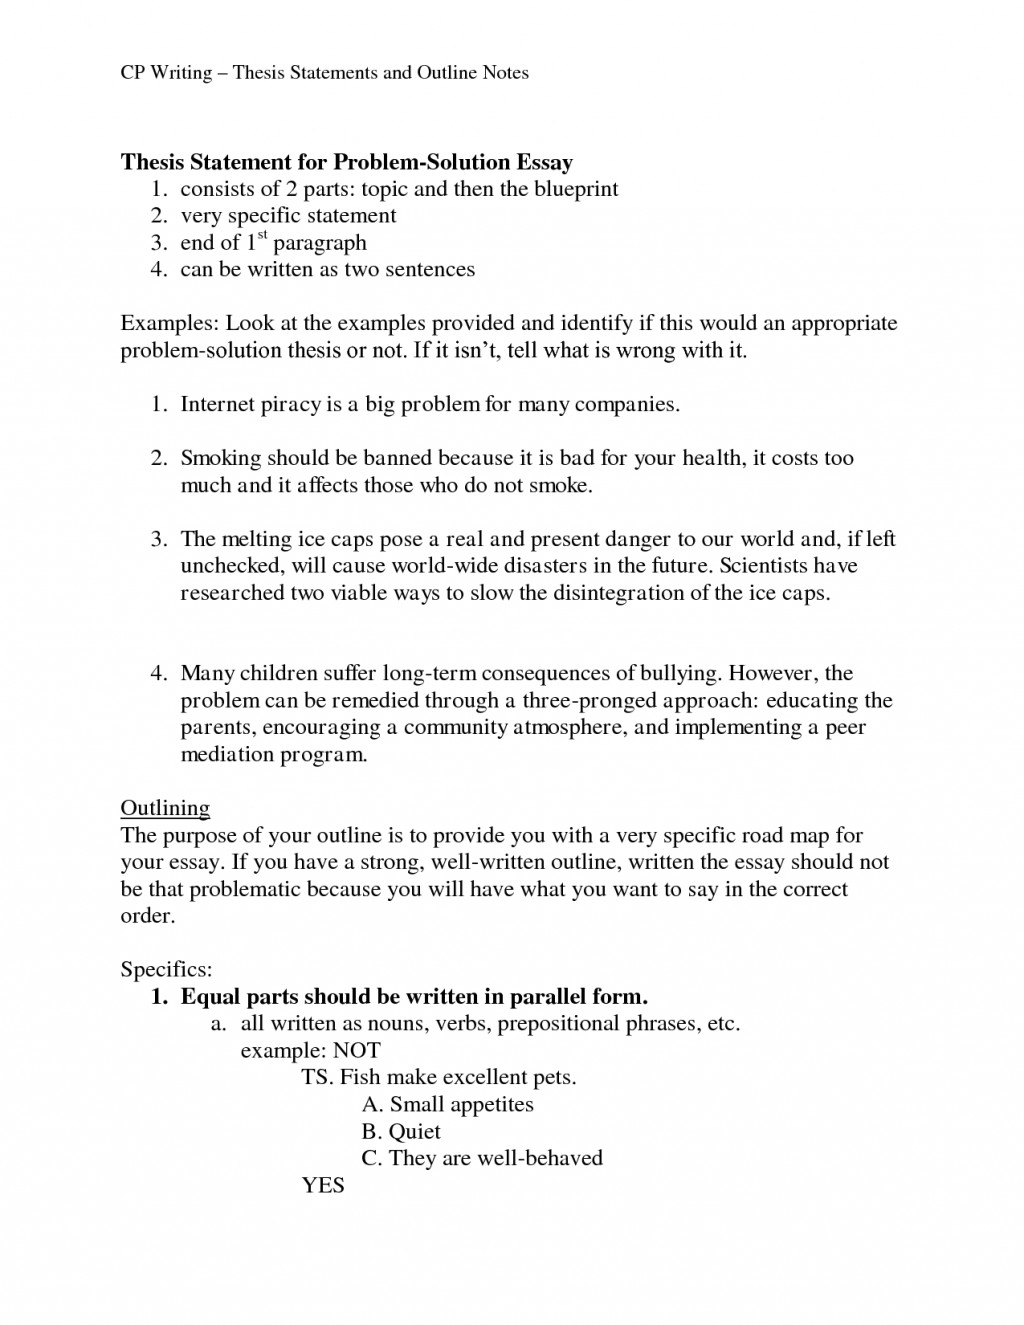 008 Problem Statement Format Template Mm6qwcl1id3152 How To Write Thesis For Science Research Shocking A Paper Large